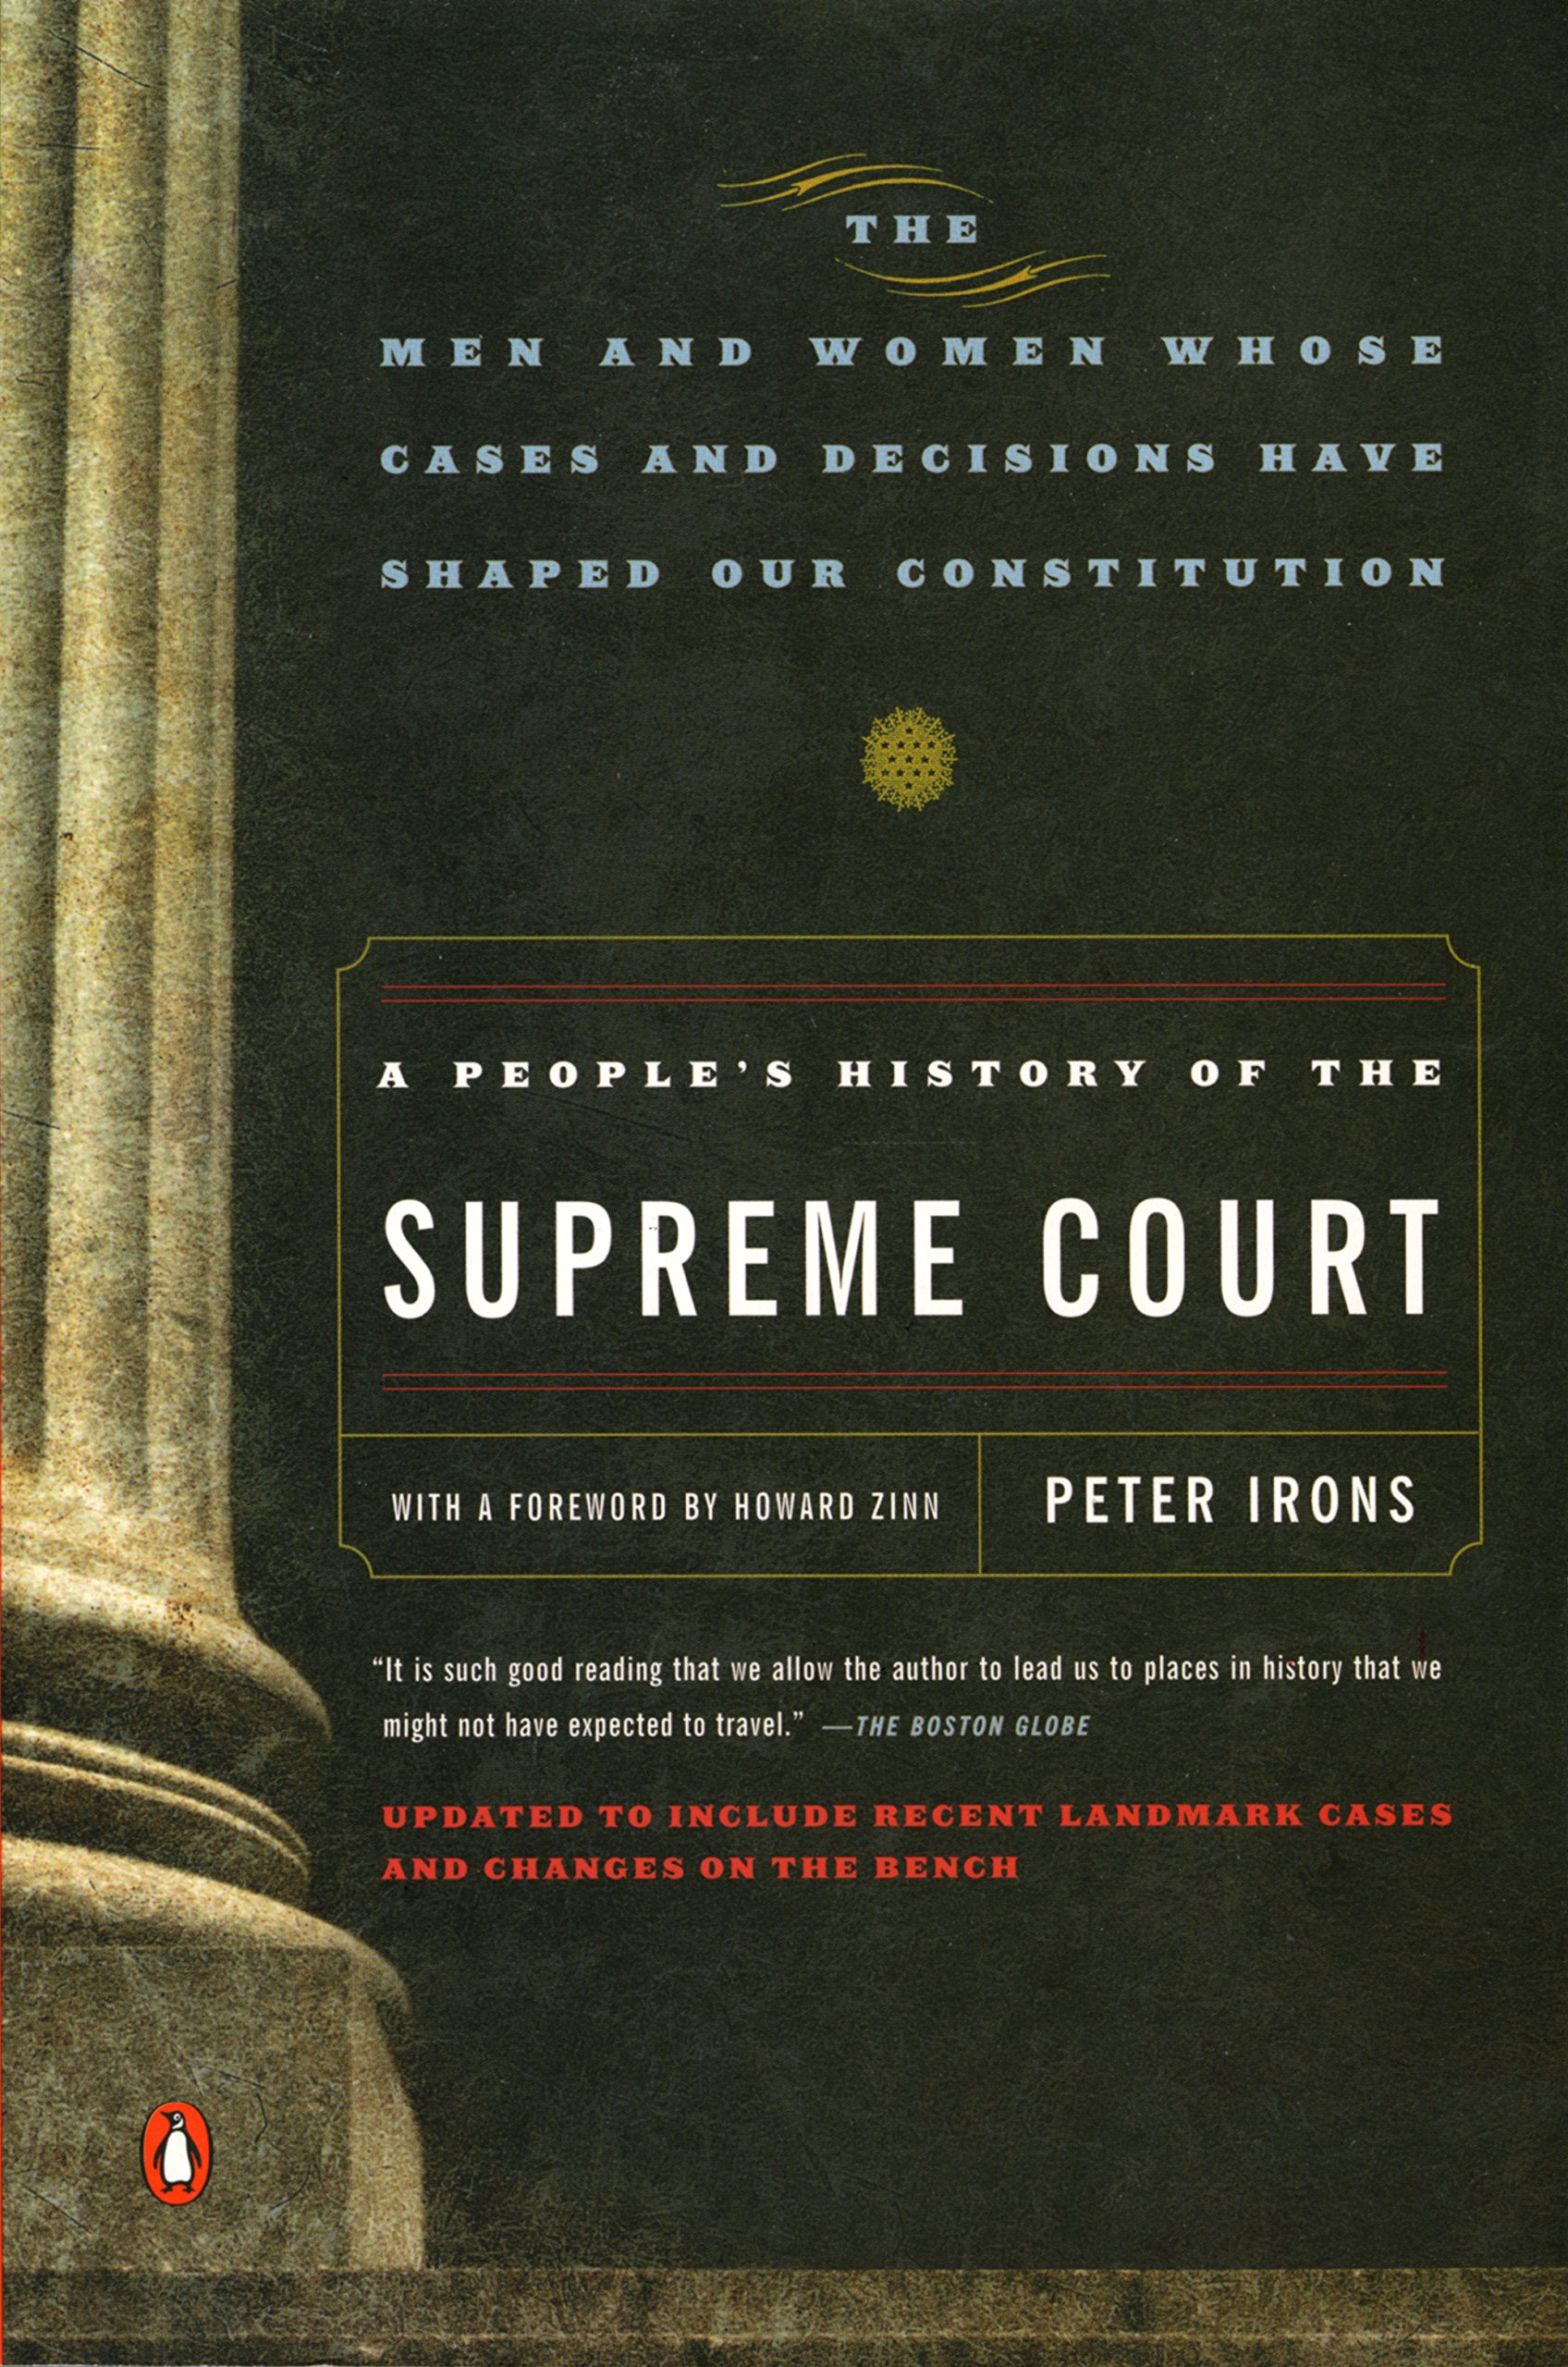 A People's History of the Supreme Court: The Men and Women Whose Cases and Decisions Have Shaped Our Constitution…